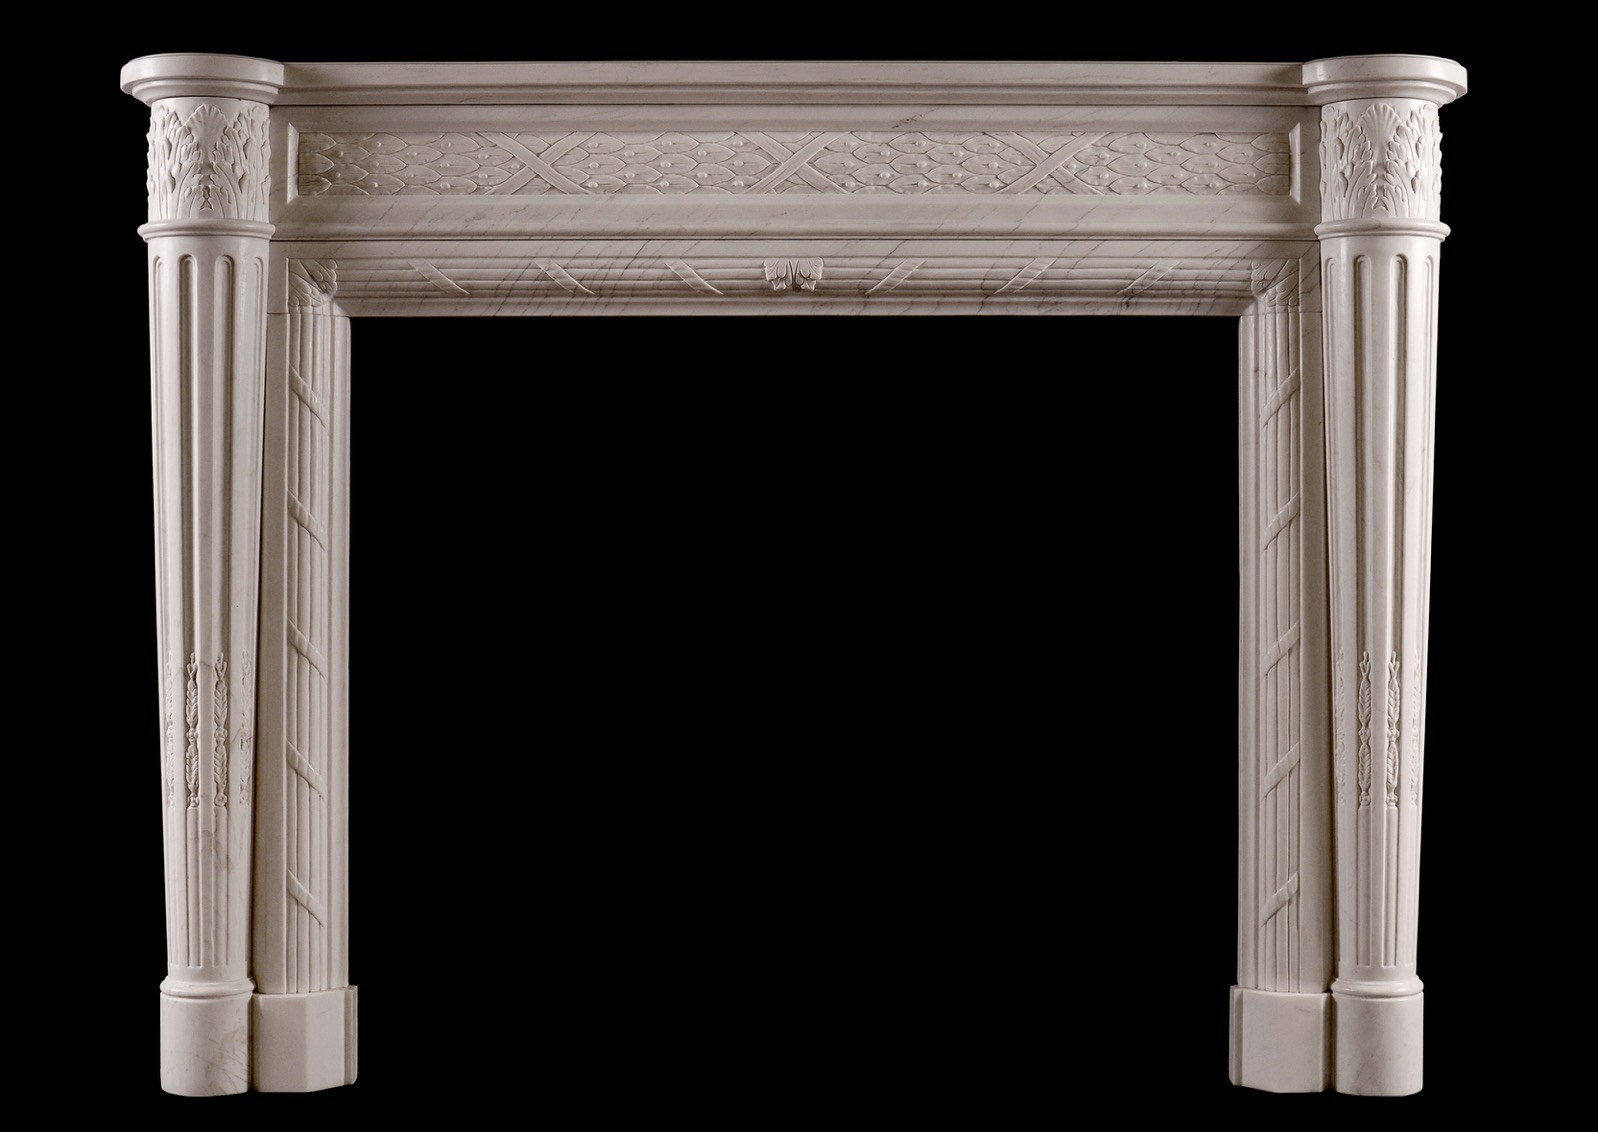 antique fireplaces frame